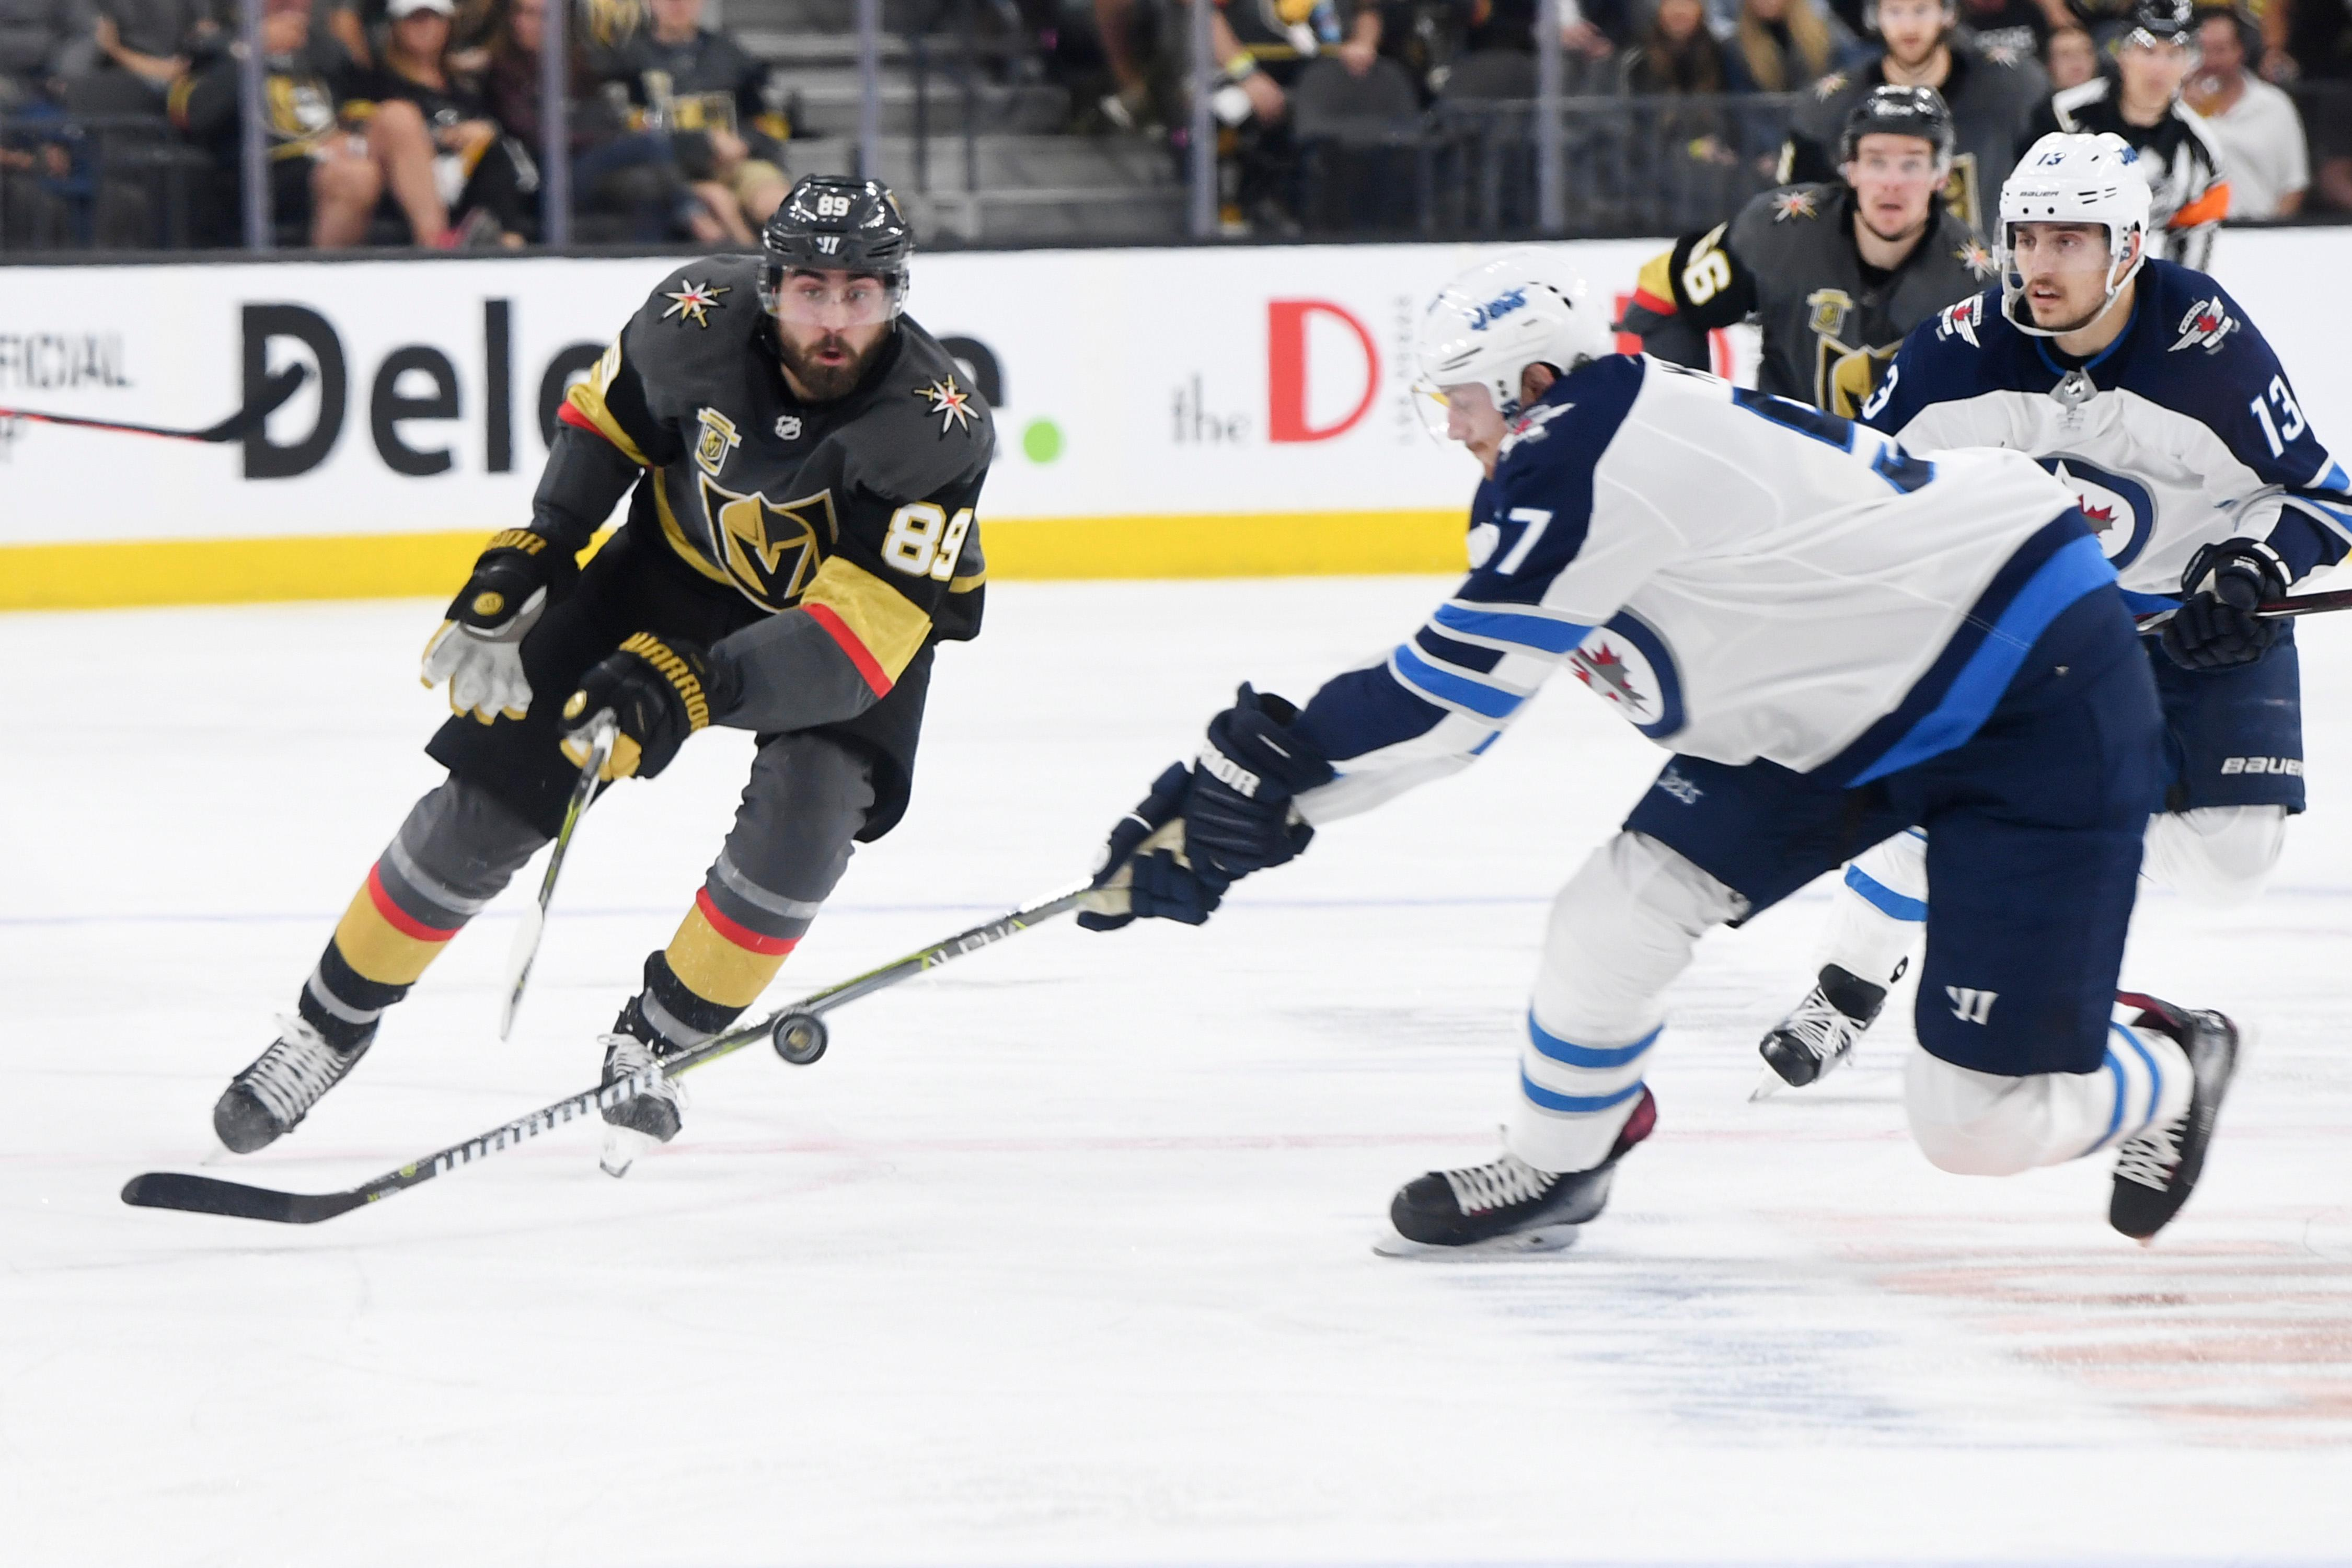 Vegas Golden Knights right wing Alex Tuch (89) gets a pass by Winnipeg Jets defenseman Tyler Myers (57) during Game 3 of their NHL hockey Western Conference Final game Wednesday, May 16, 2018, at T-Mobile Arena. CREDIT: Sam Morris/Las Vegas News Bureau